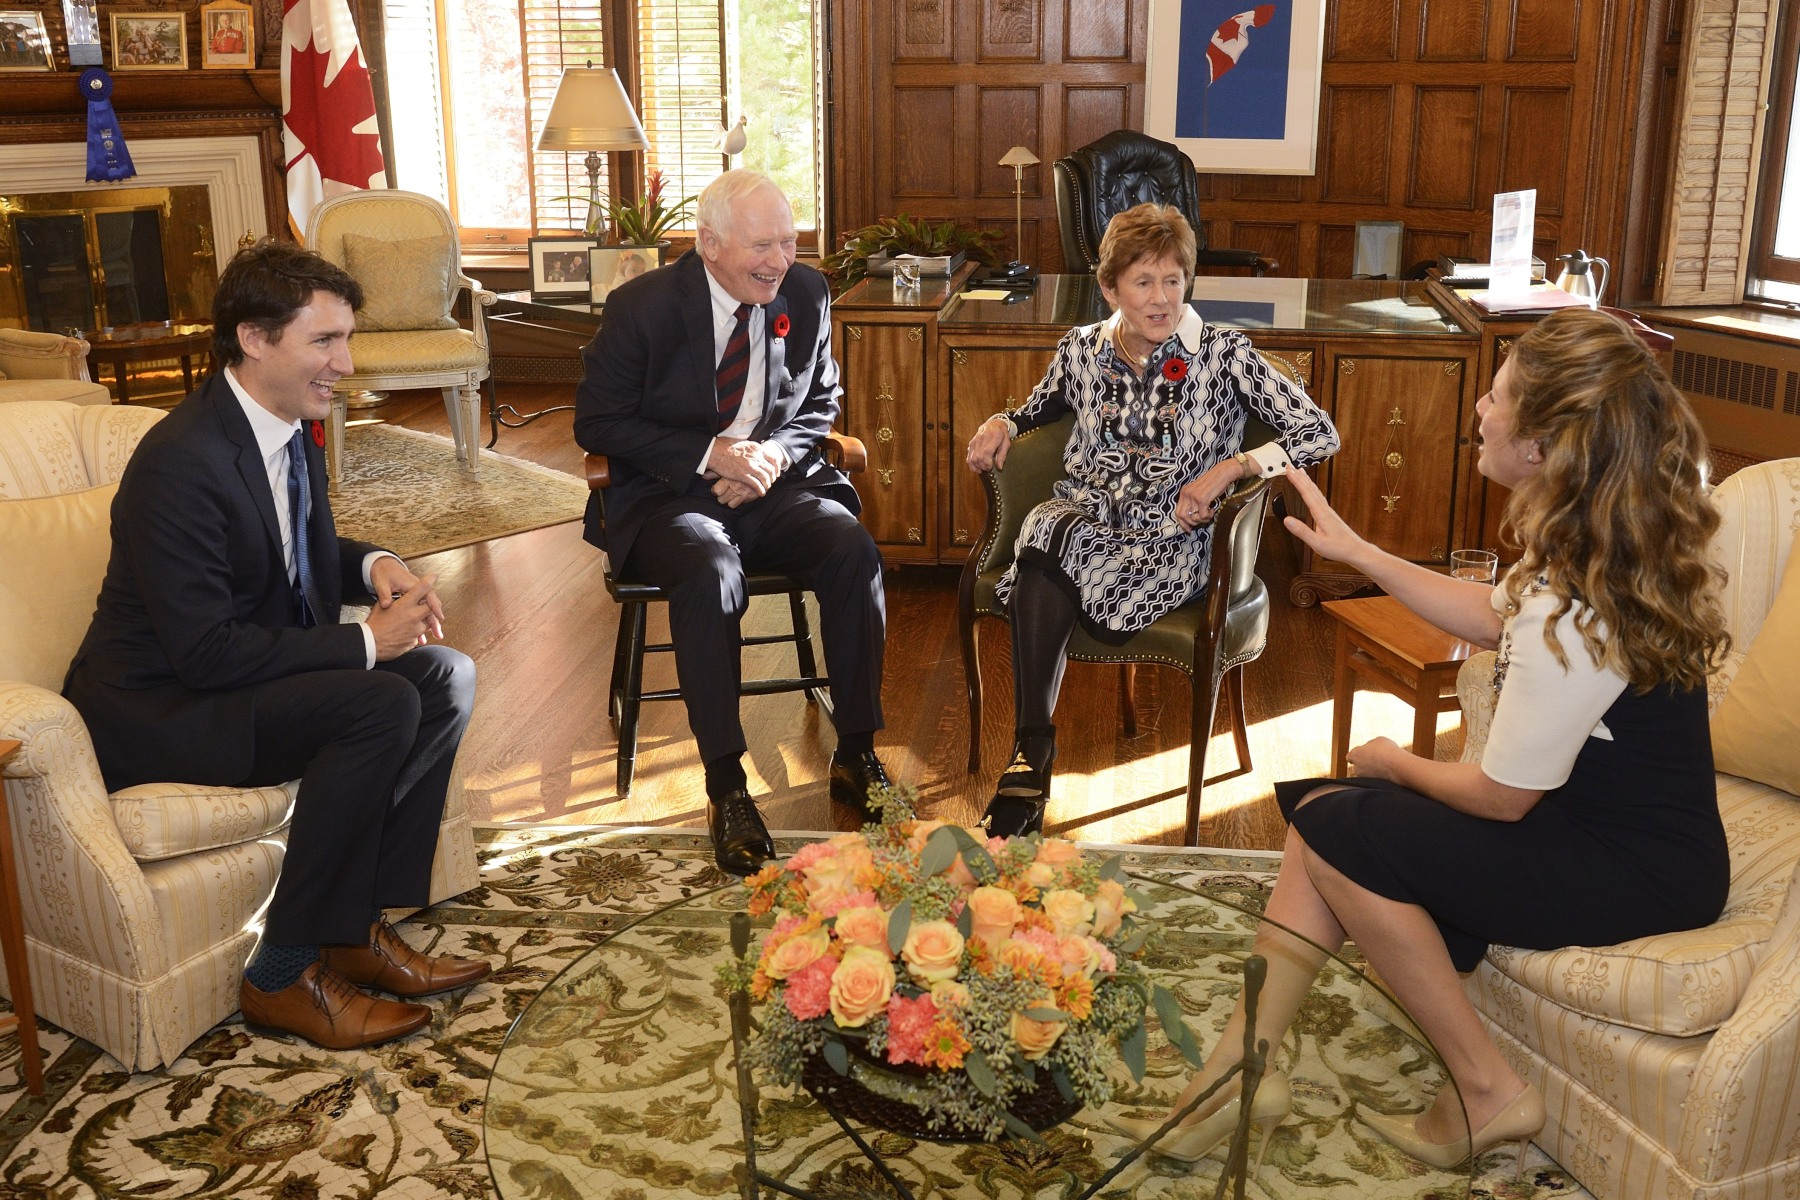 Prior to the start of the ceremony, Their Excellencies met with the Prime Minister-designate and Mrs. Grégoire-Trudeau.